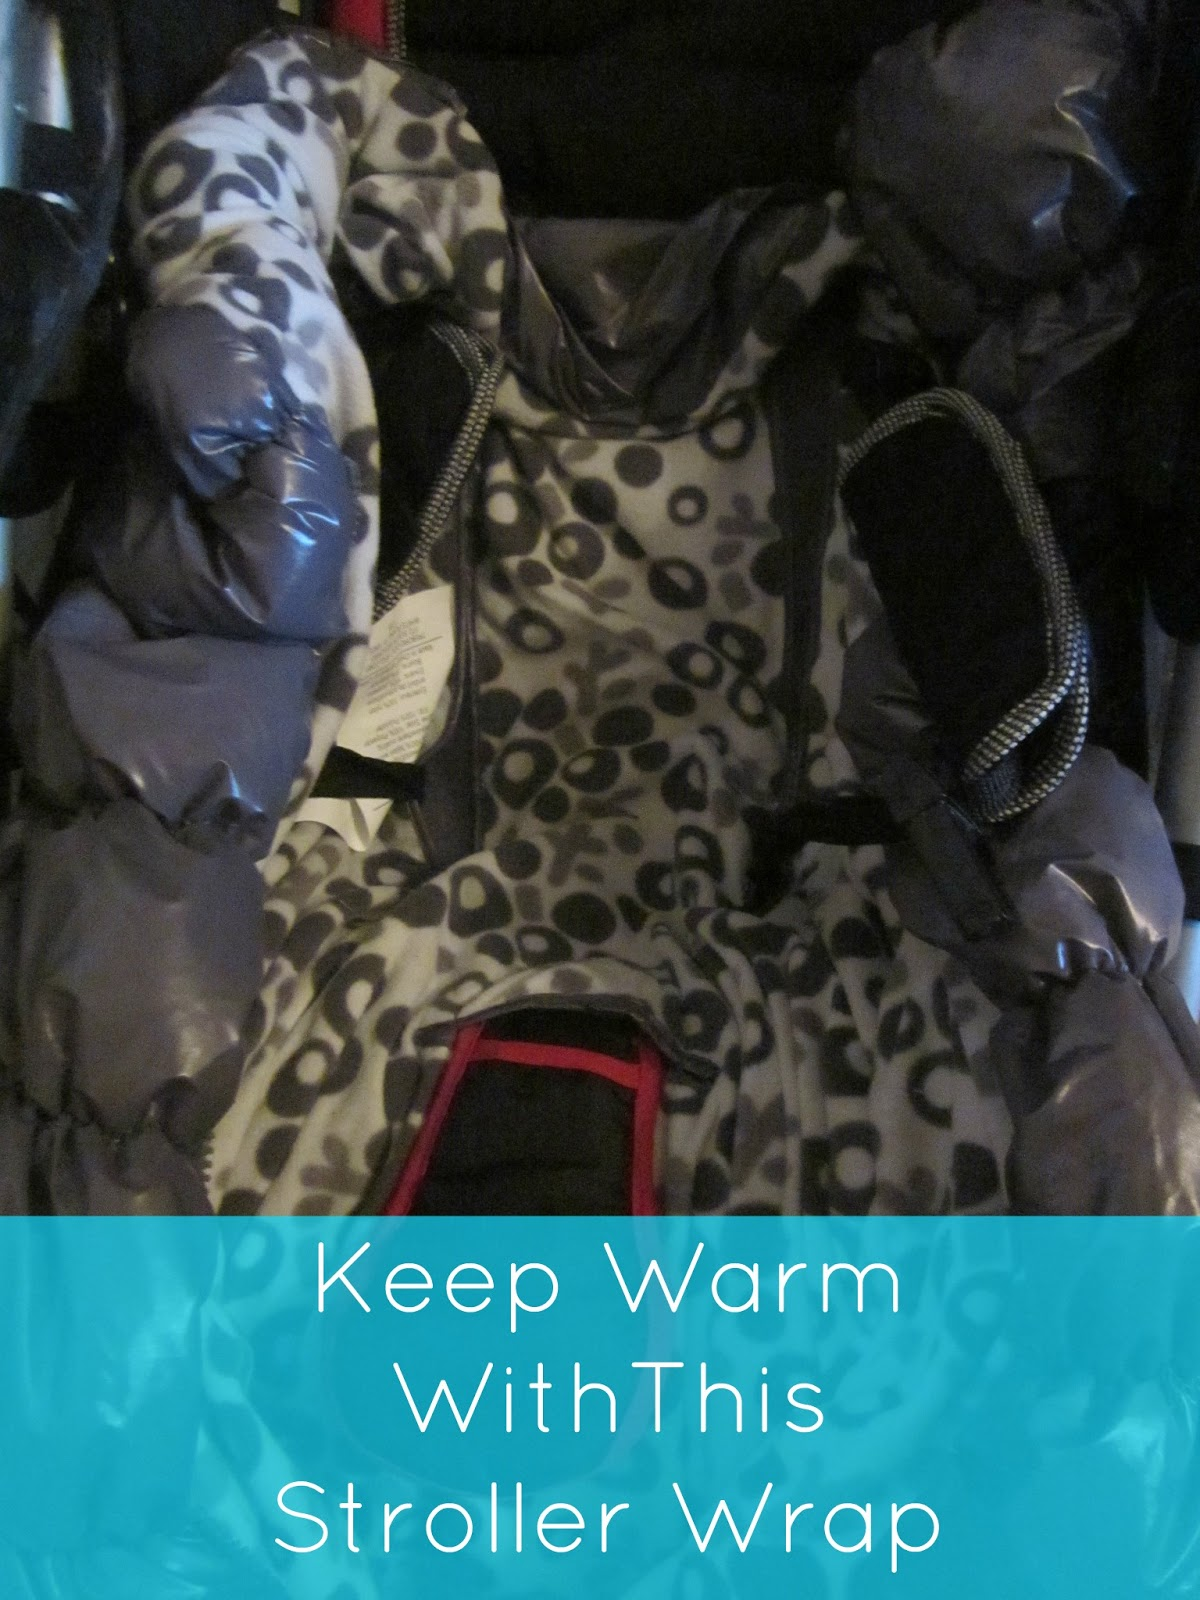 Soothe time stroller wrap